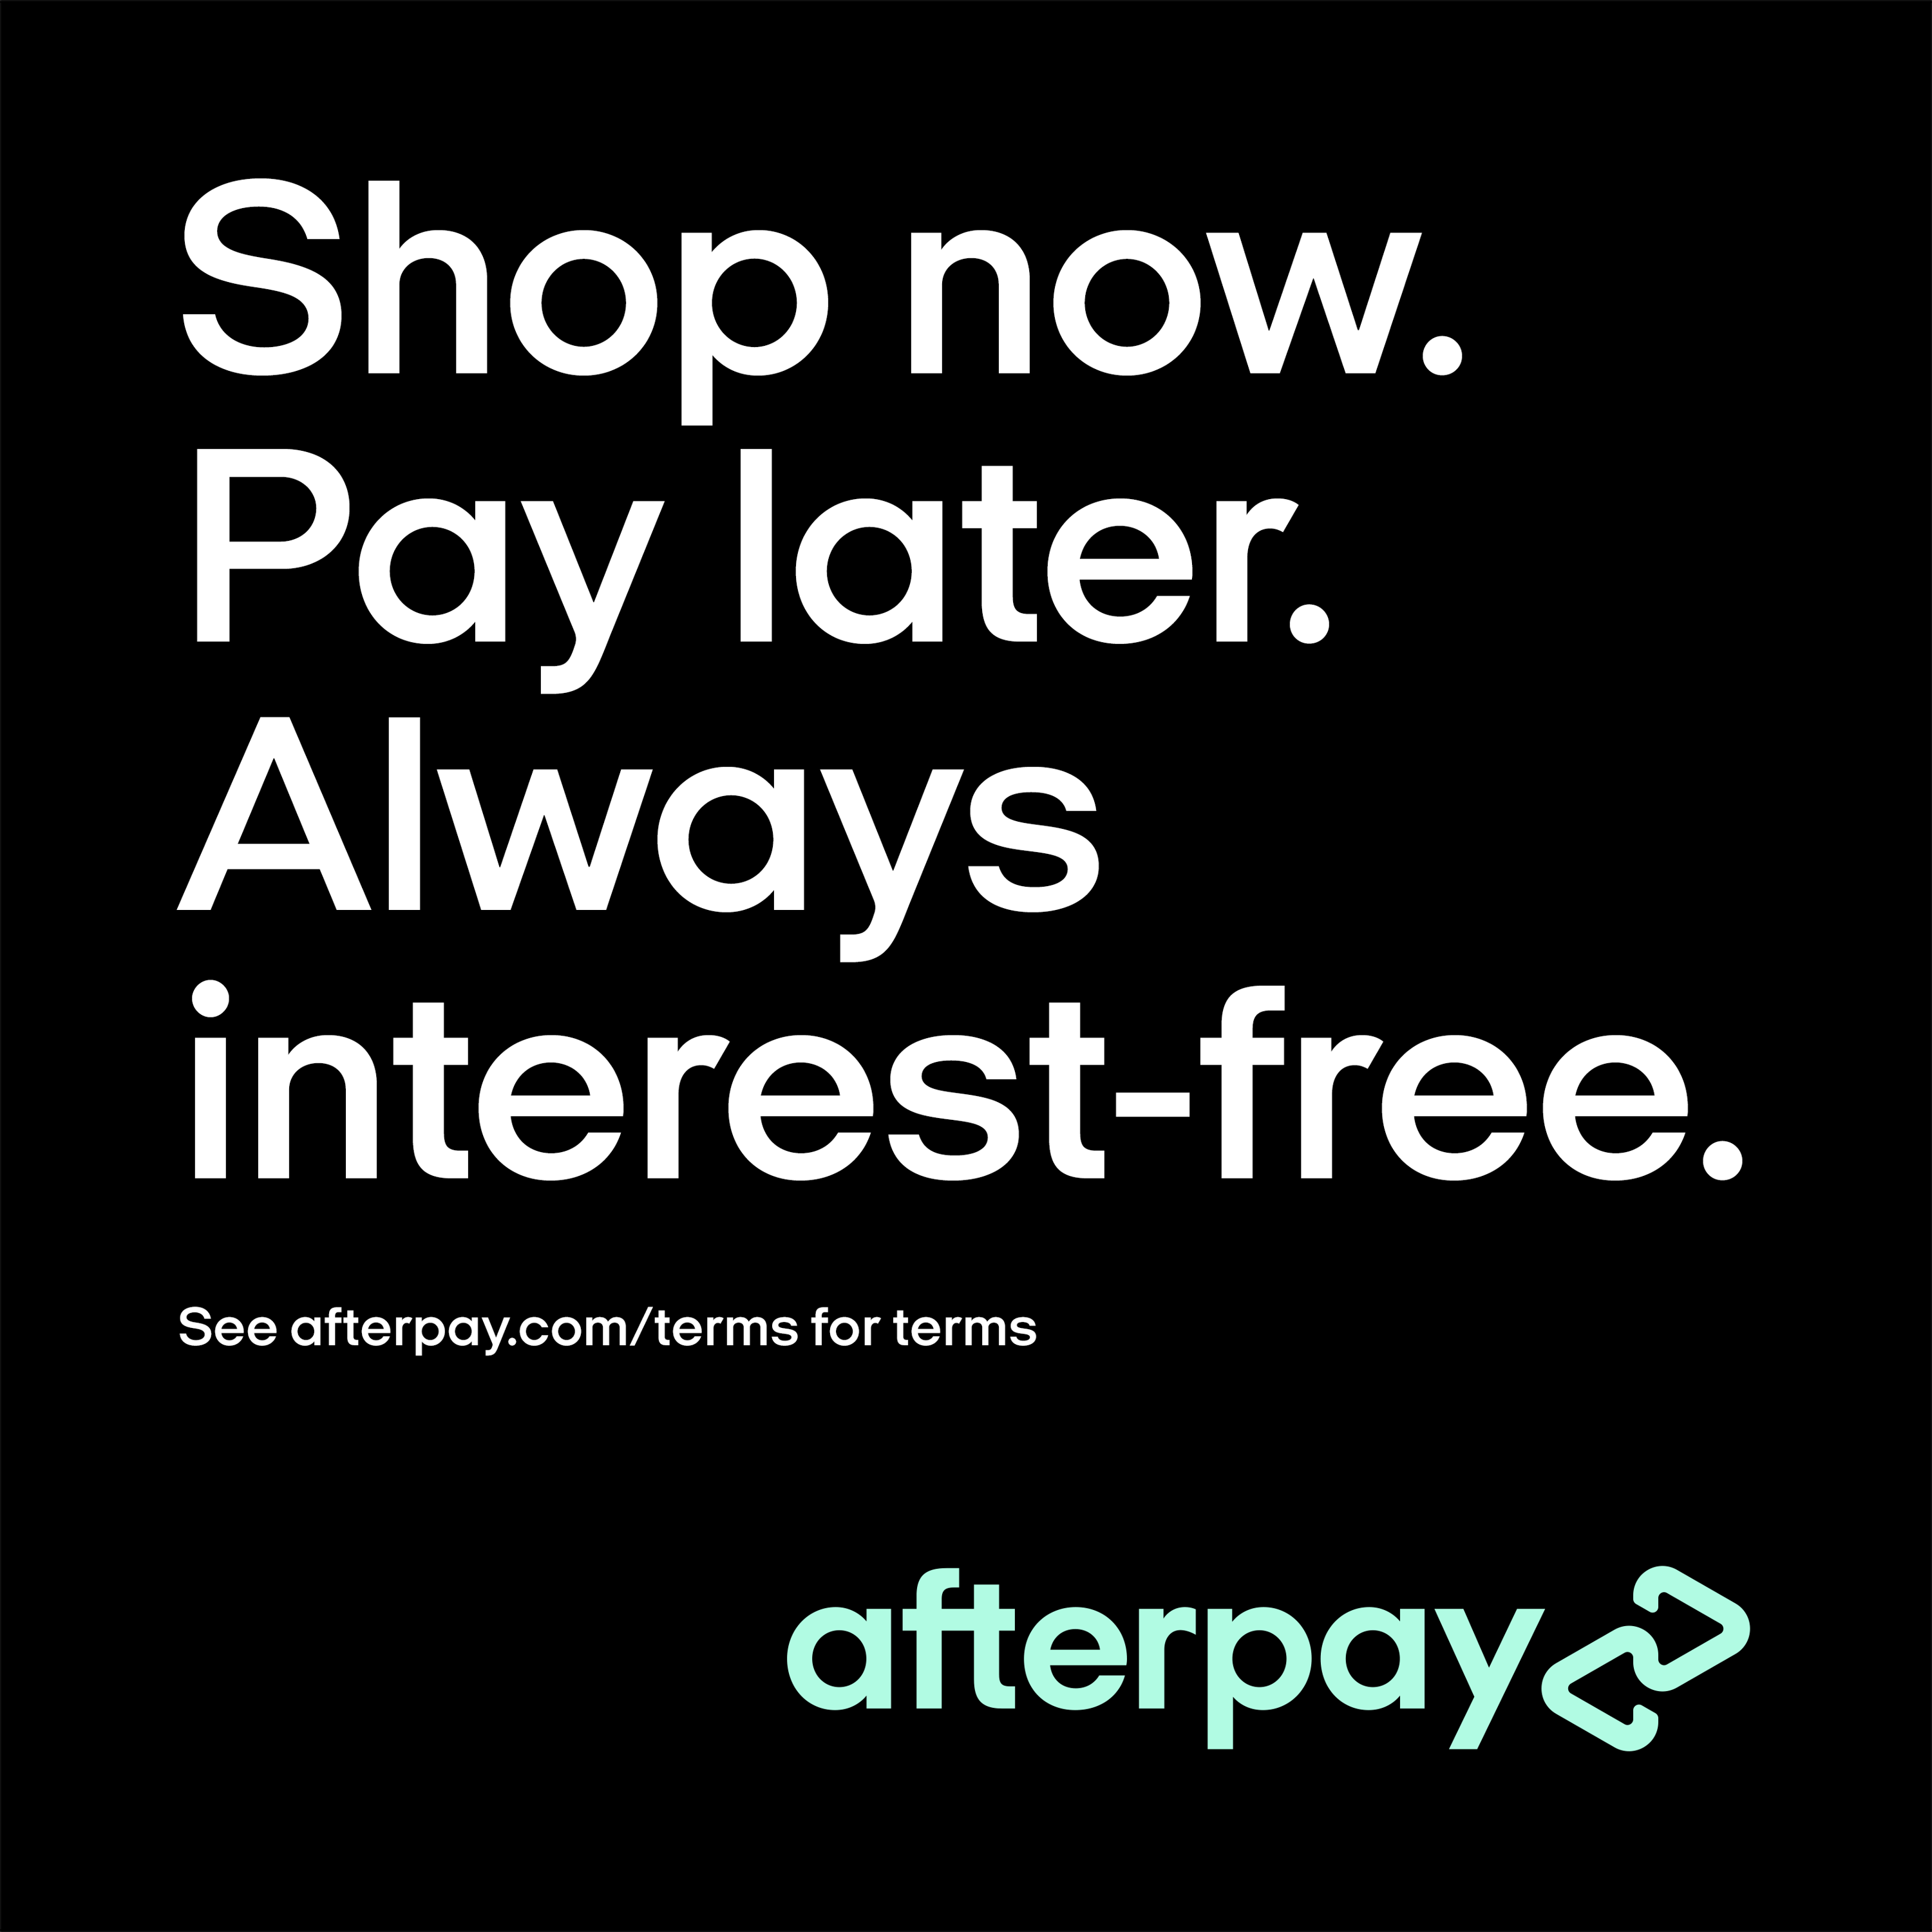 Afterpay in